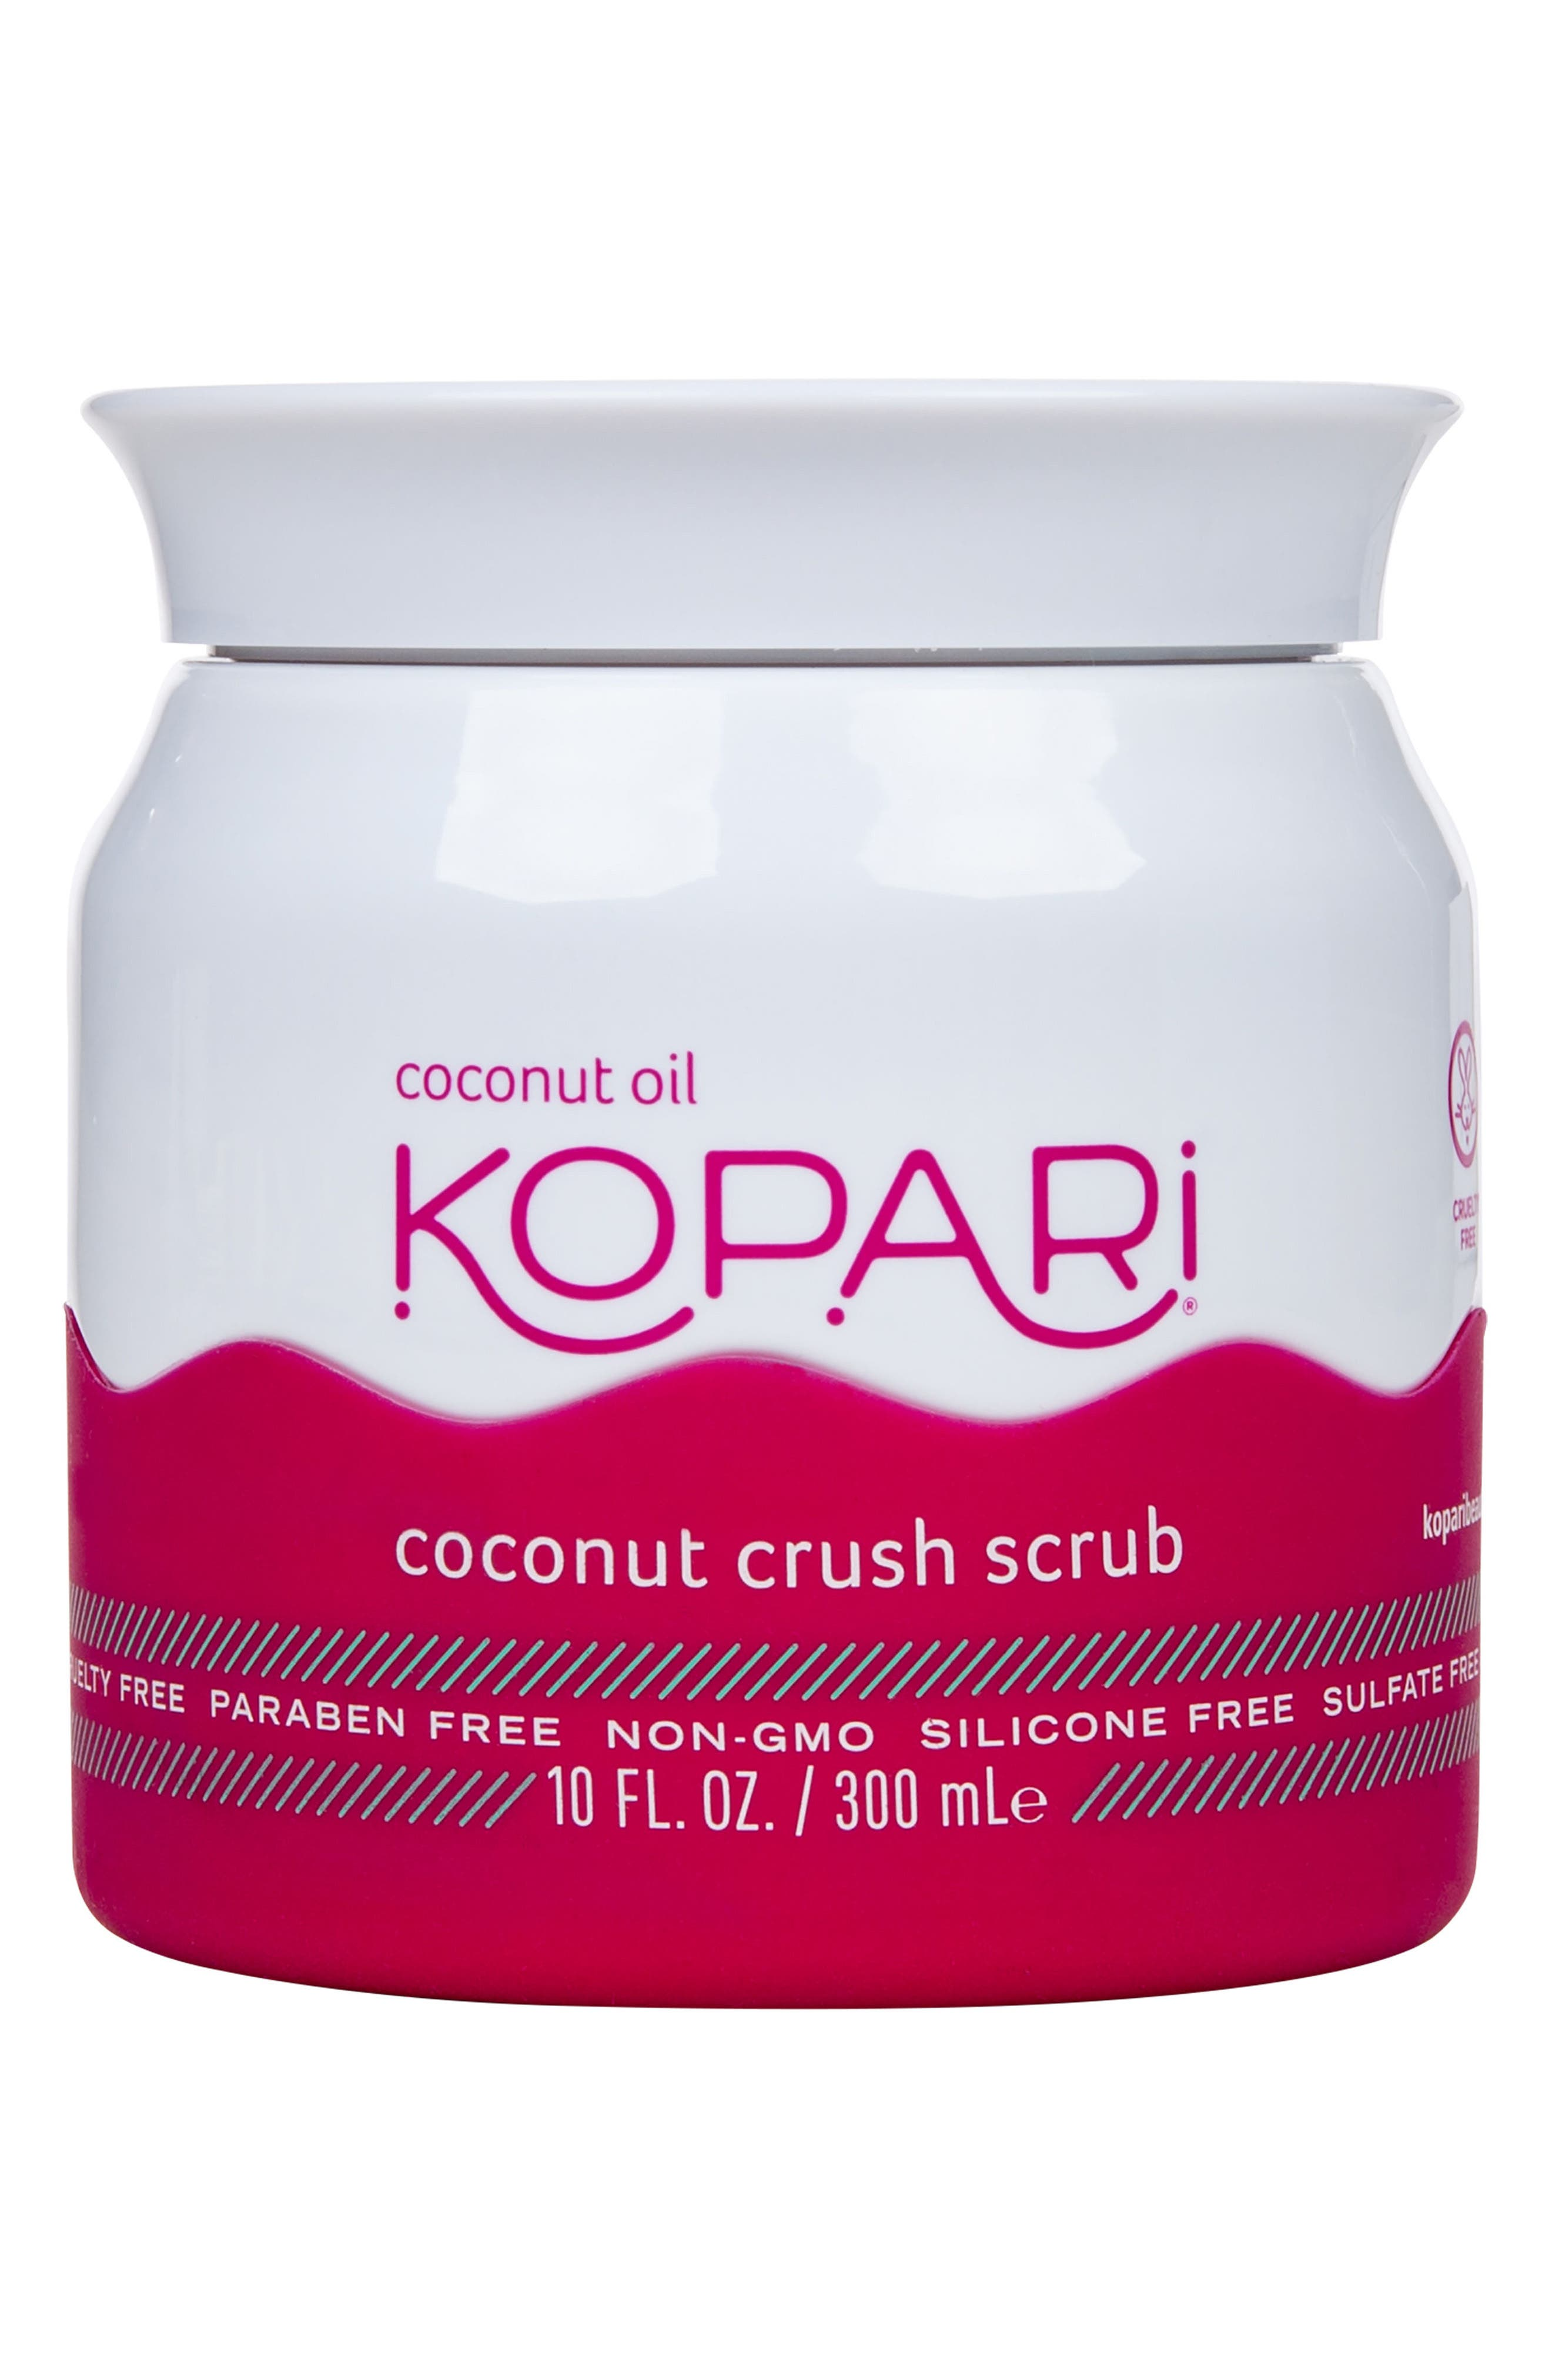 What it is: A coconut and brown sugar scrub that helps polish and exfoliate skin to perfection while hydrating skin so it glows. Who it\'s for: All skin types. What it does: Its formula is infused with small pieces of Tahitian coconut shell to buff dry skin off your body. The scrub helps exfoliate to reveal smoother, silkier skin while helping to shrink the appearance of pores and minimize dark spots and age spots. It reduces flakiness while aloe